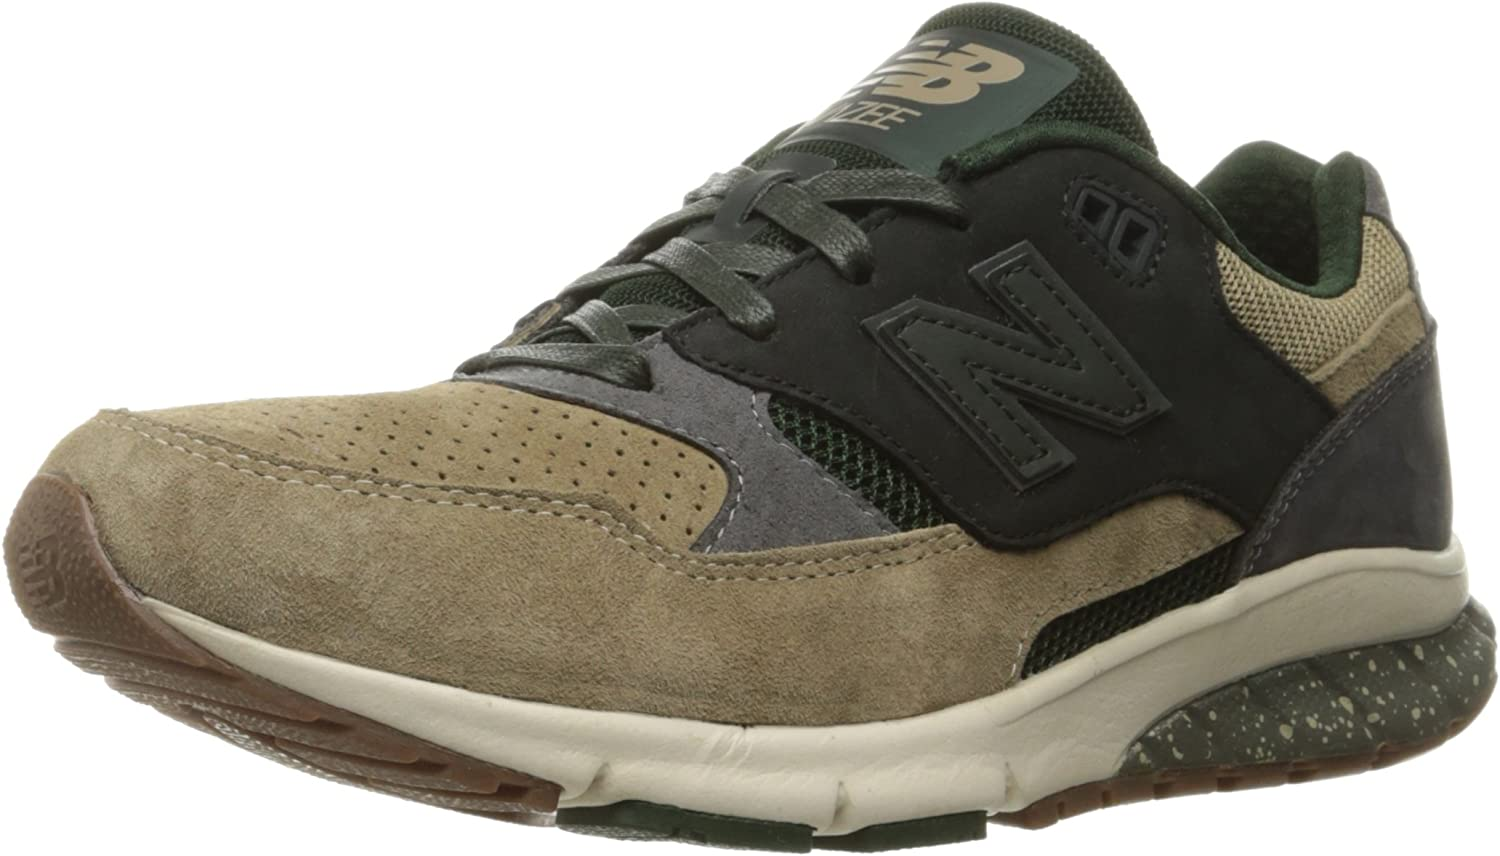 New Balance Sneaker MVL530 Green